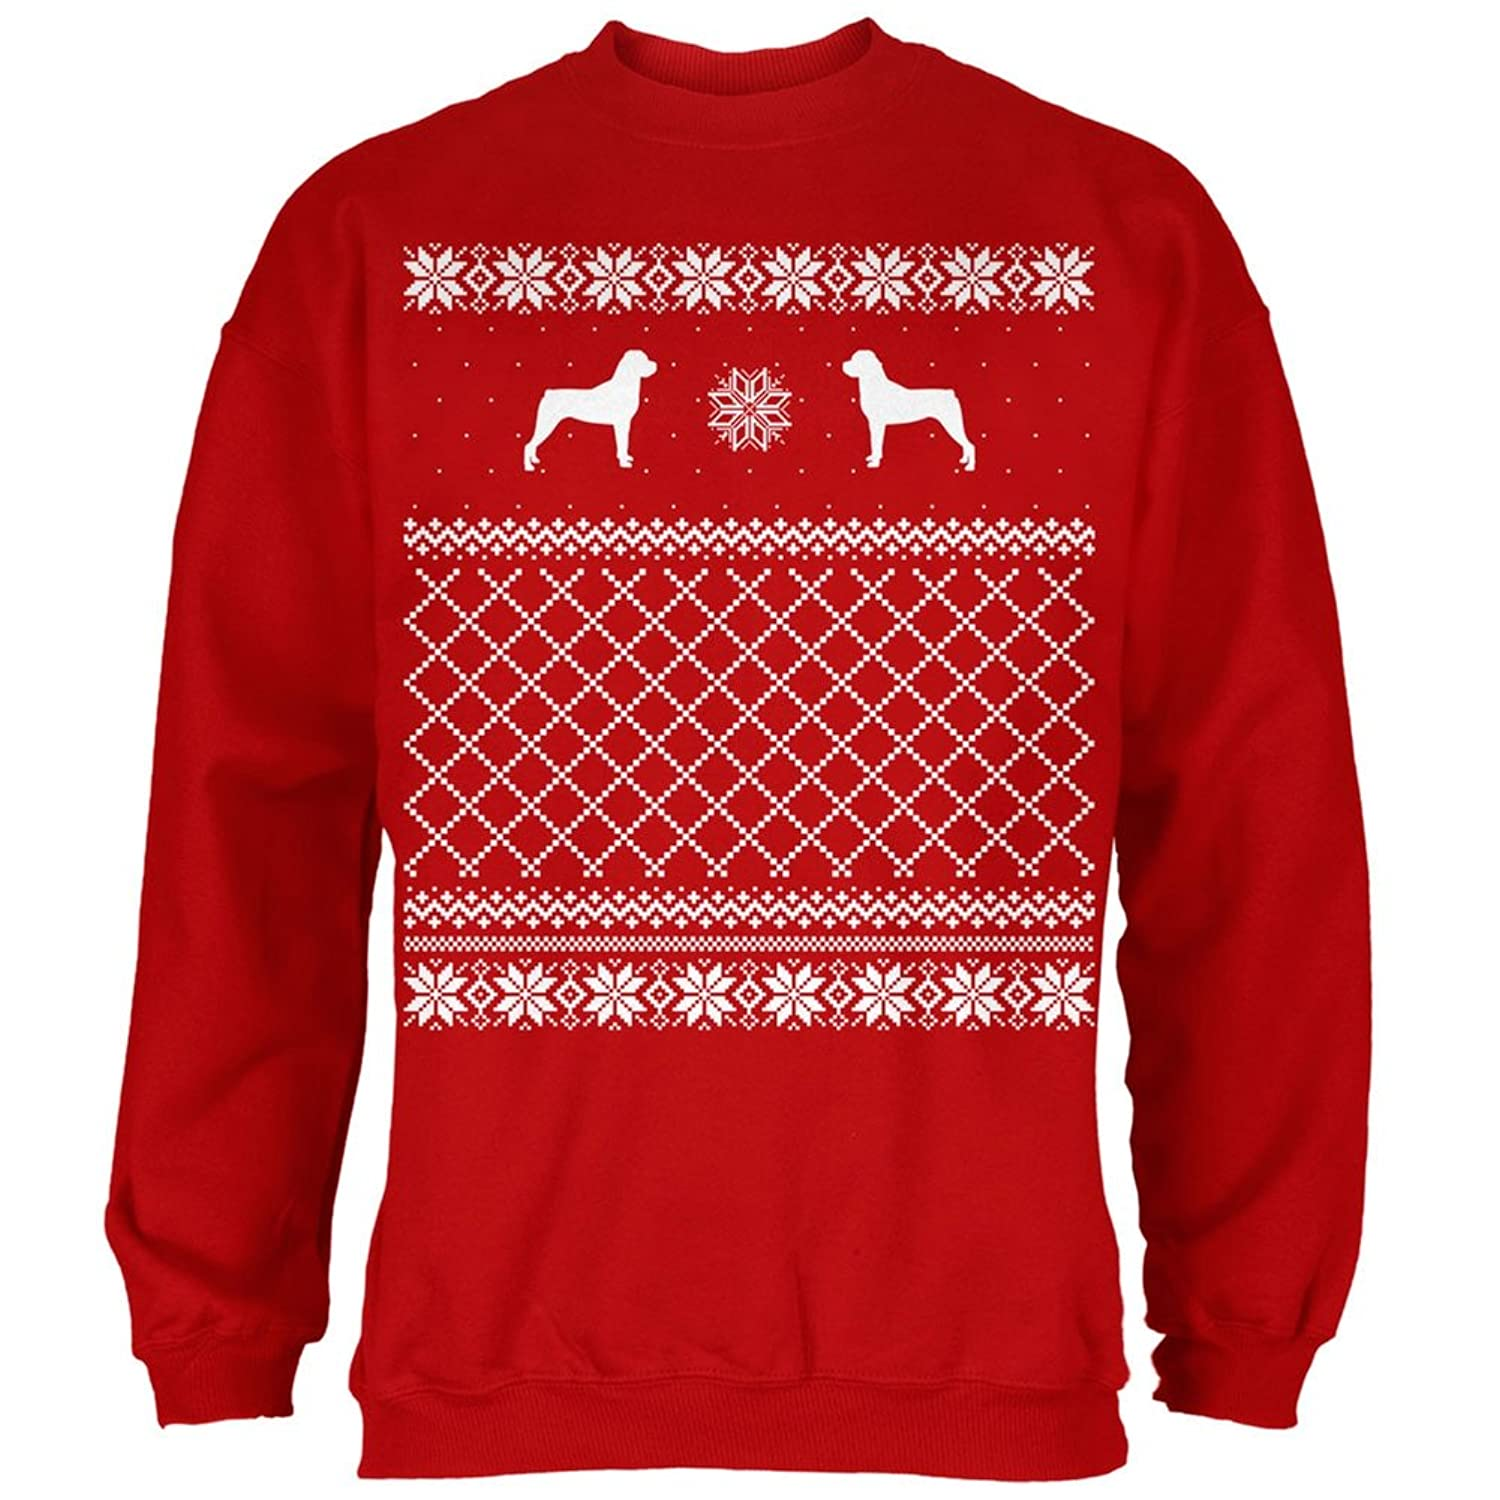 Amazon.com: Rottweiler Ugly Christmas Sweater Red Adult Sweatshirt ...